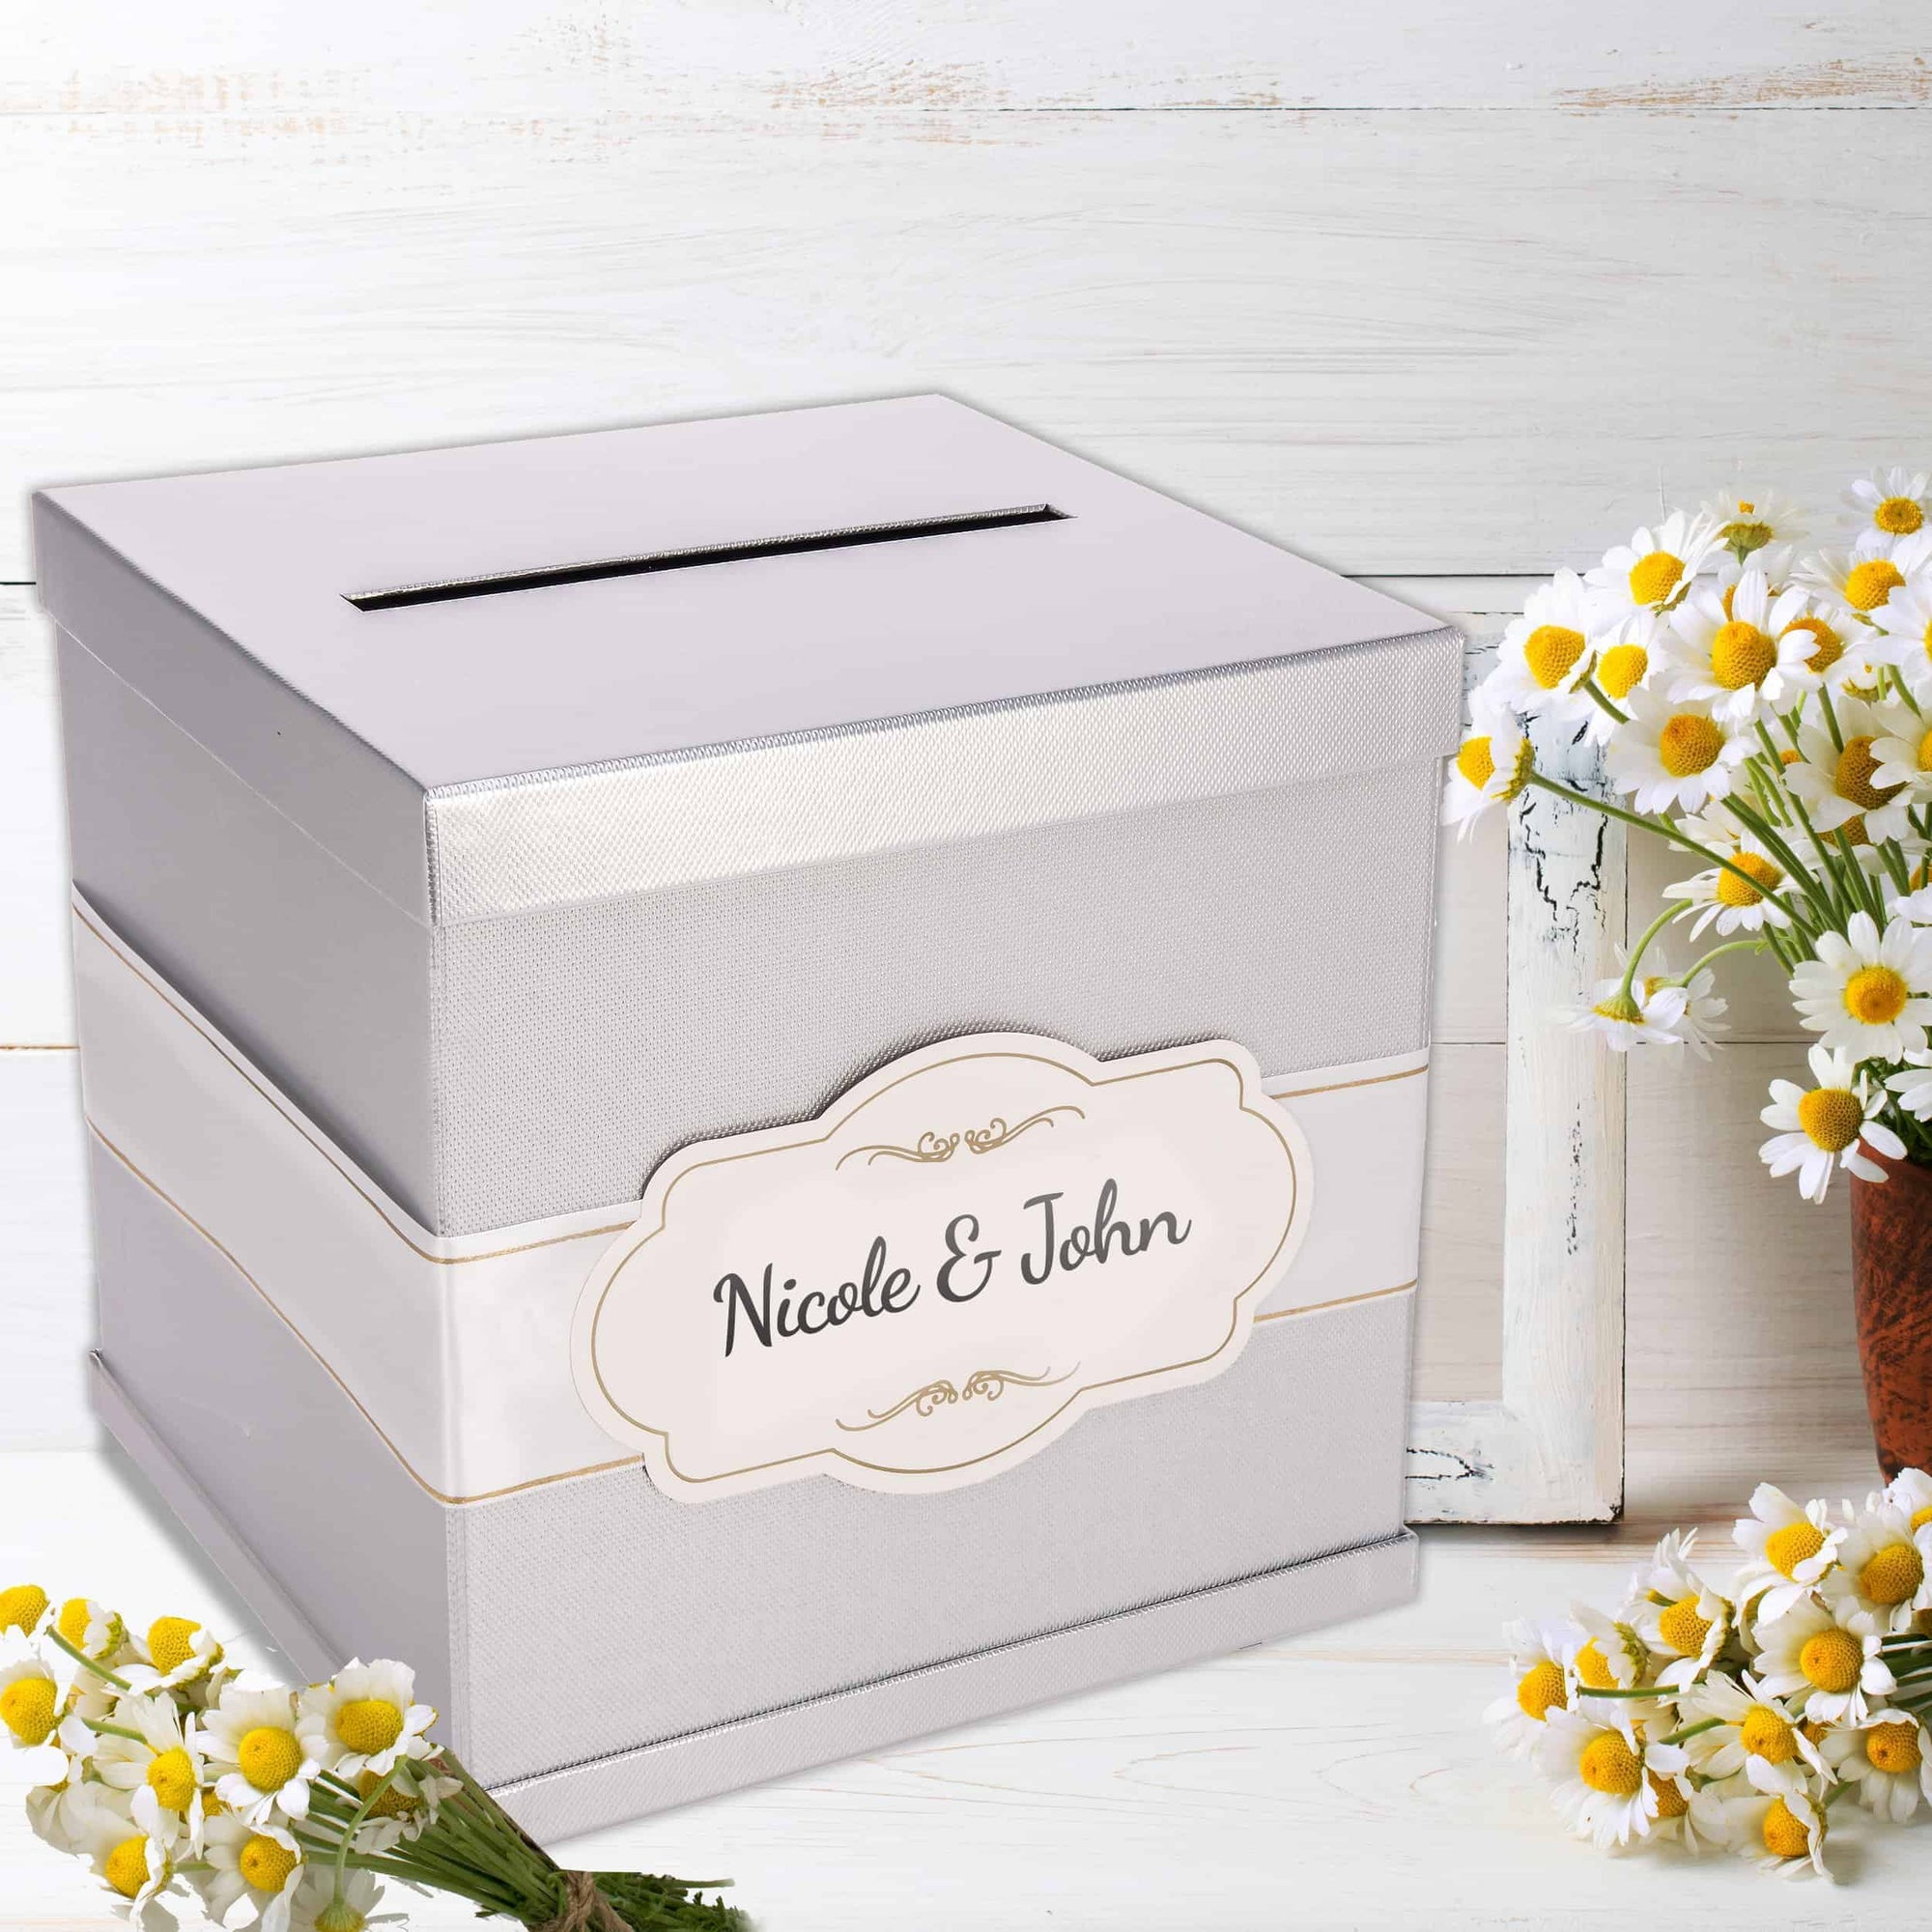 Personalized Premium Card Box - Merry Expressions